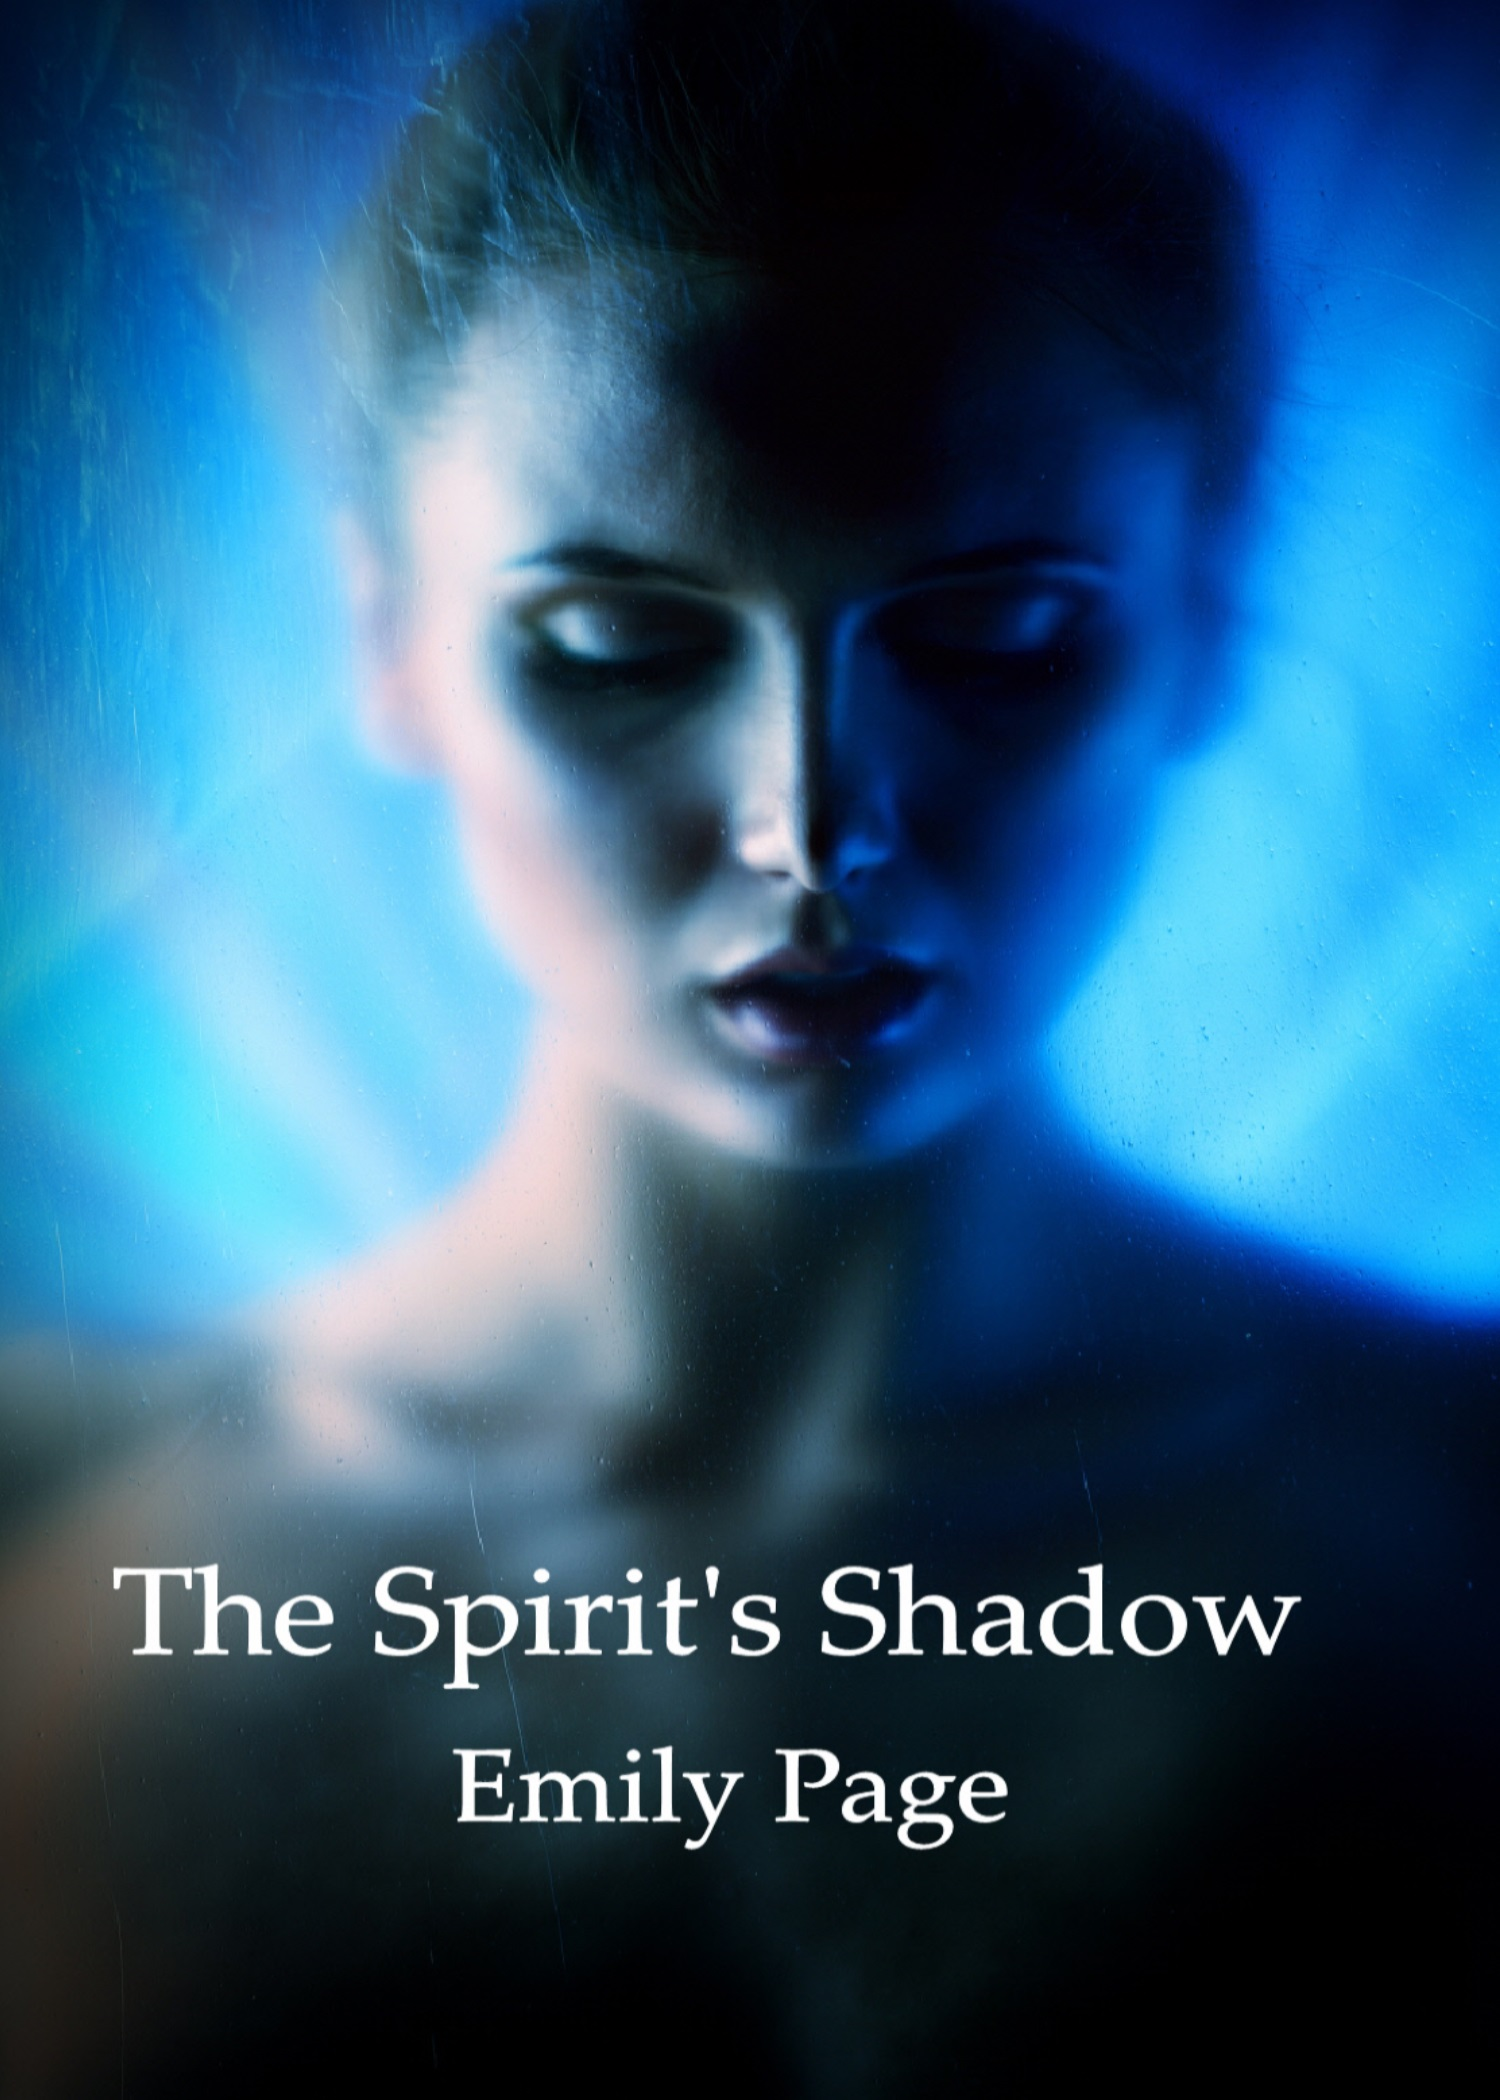 Emily Page - The Spirit's Shadow